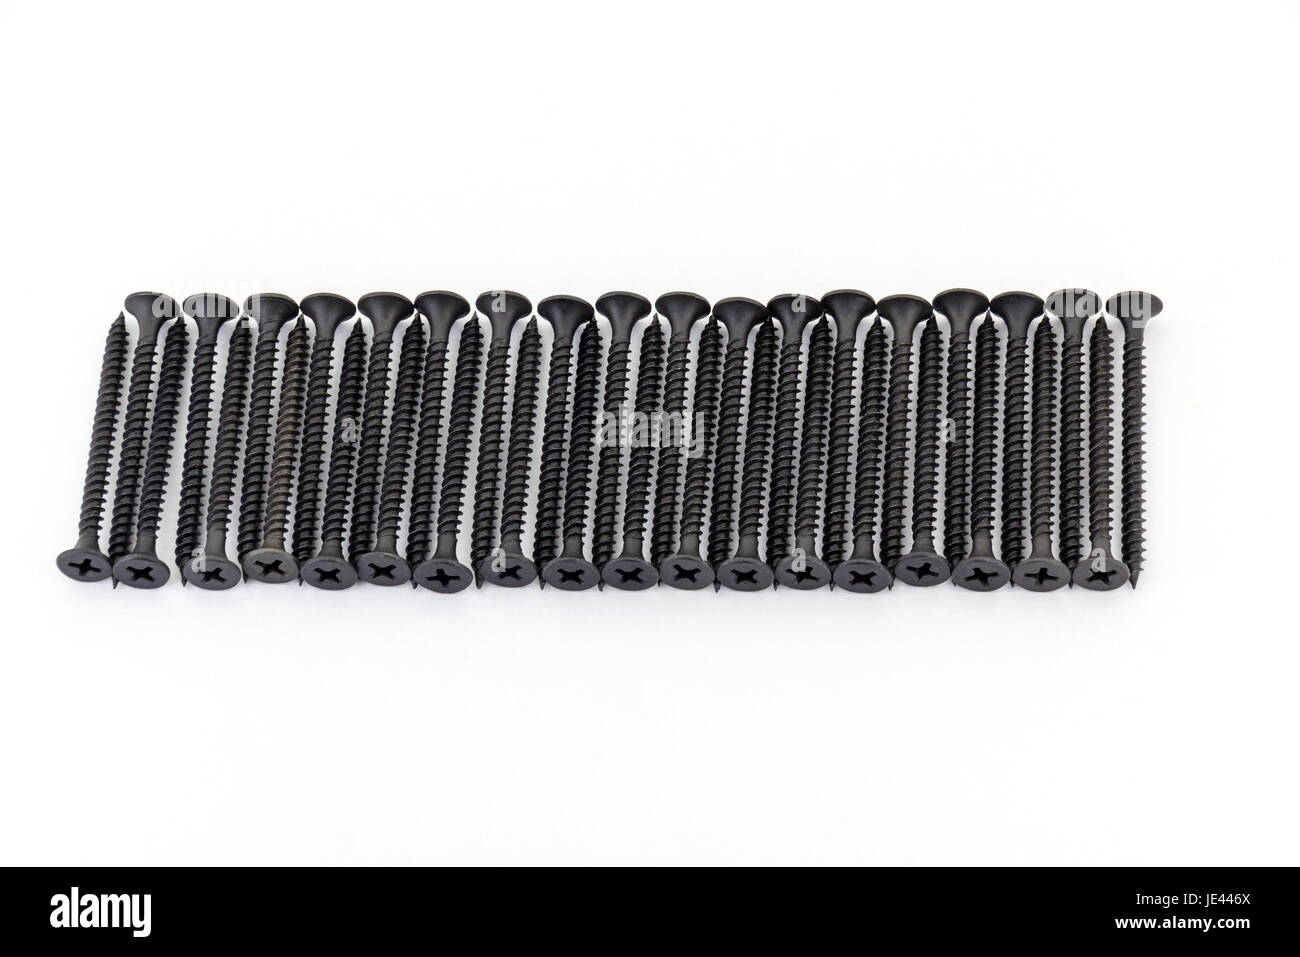 A raw of avarage black Oxidized self-tapping screws isolated on white background - Stock Image